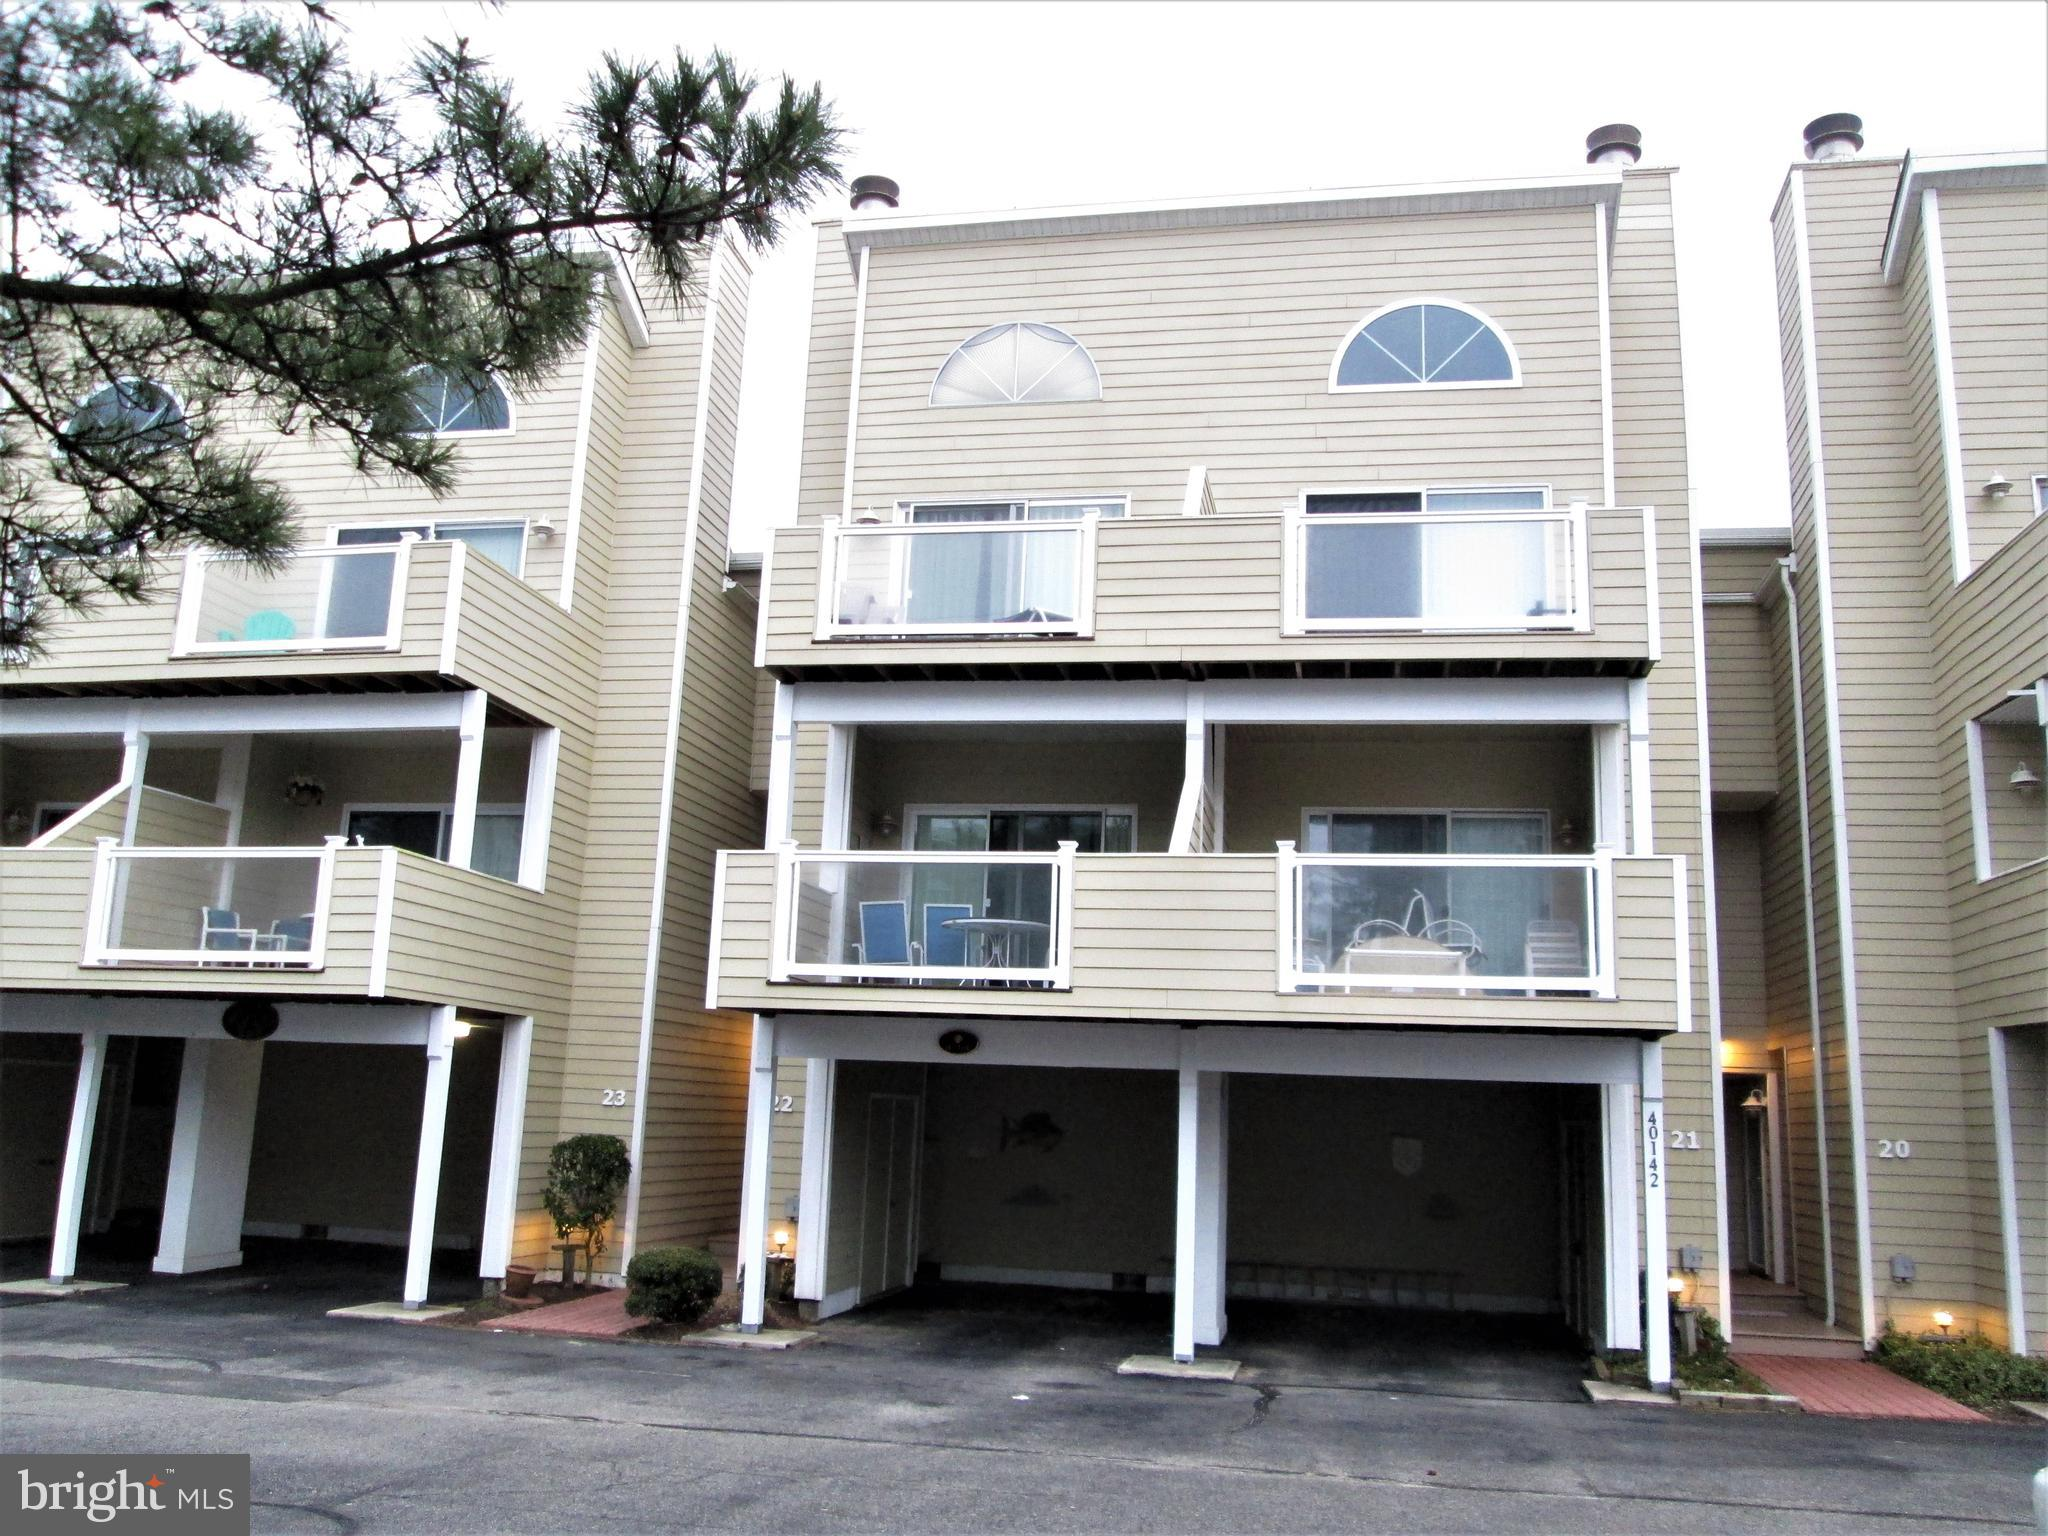 "Beautiful 3 Br. and 3.5 Ba. townhouse on the west side of Bunting Ave.,  Enjoy peak-a-boo views of the ocean directly across the street.  Just about 150 feet to the beach.  All of the amenities here including a community pool.  Park your car when you arrive and walk everywhere within Fenwick.  This unit is being sold furnished with exclusions, list in ""documents.""  Being sold subject to weekly rentals during the summer season. Excellent rental property. The sale of this unit will be used as a 1031 Like Kind Exchange by the Sellers."